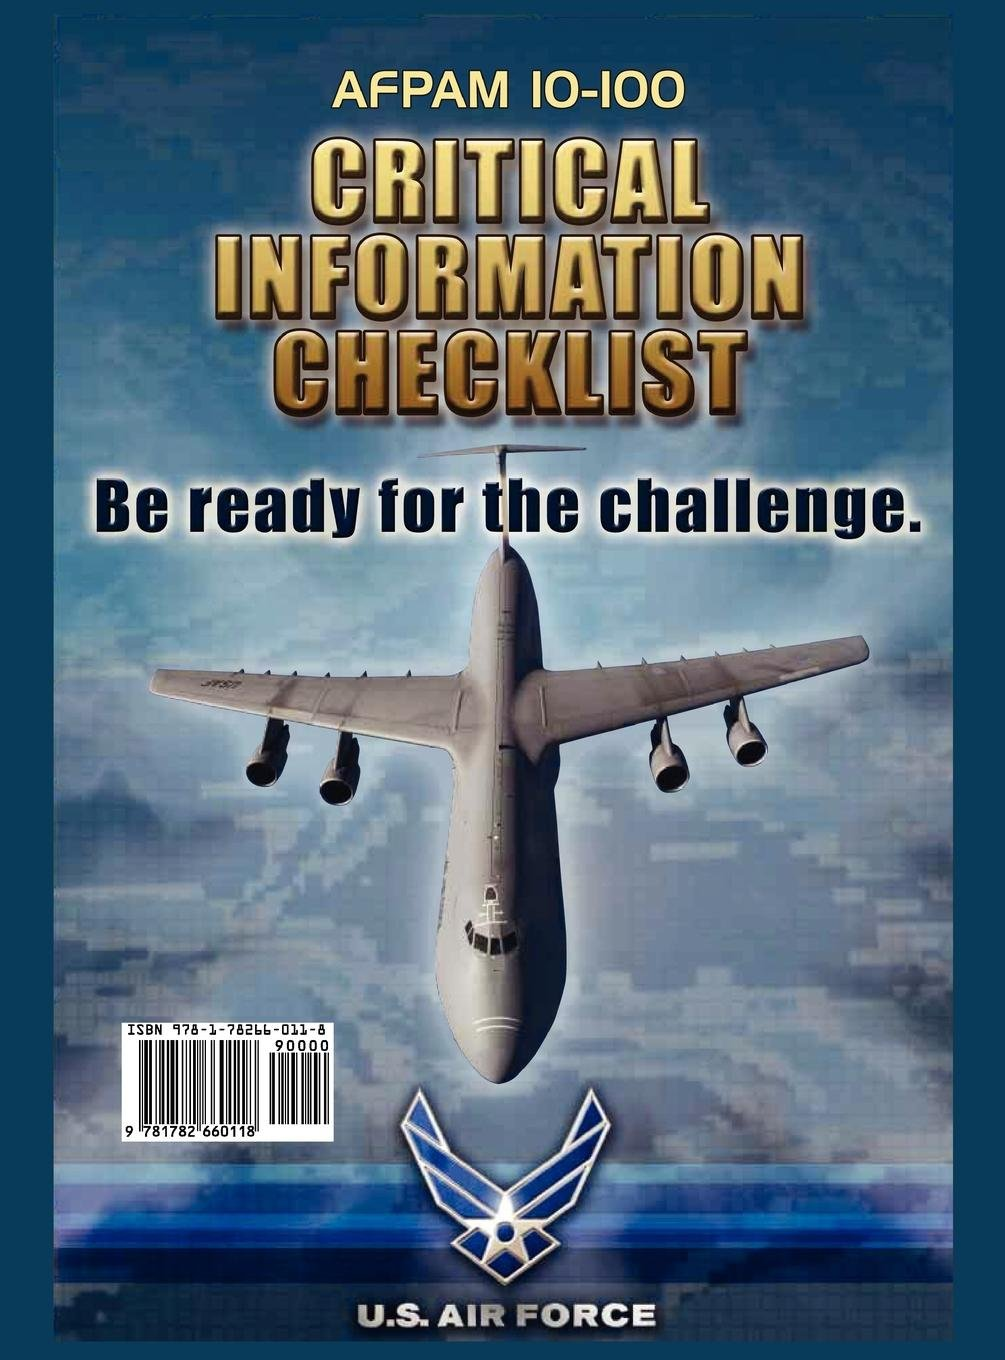 Airman's Manual Afpam 10-100. 01 March 2009, Incorporating Change 1, 24  June 2011: United States Air Force: 9781782660118: Amazon.com: Books